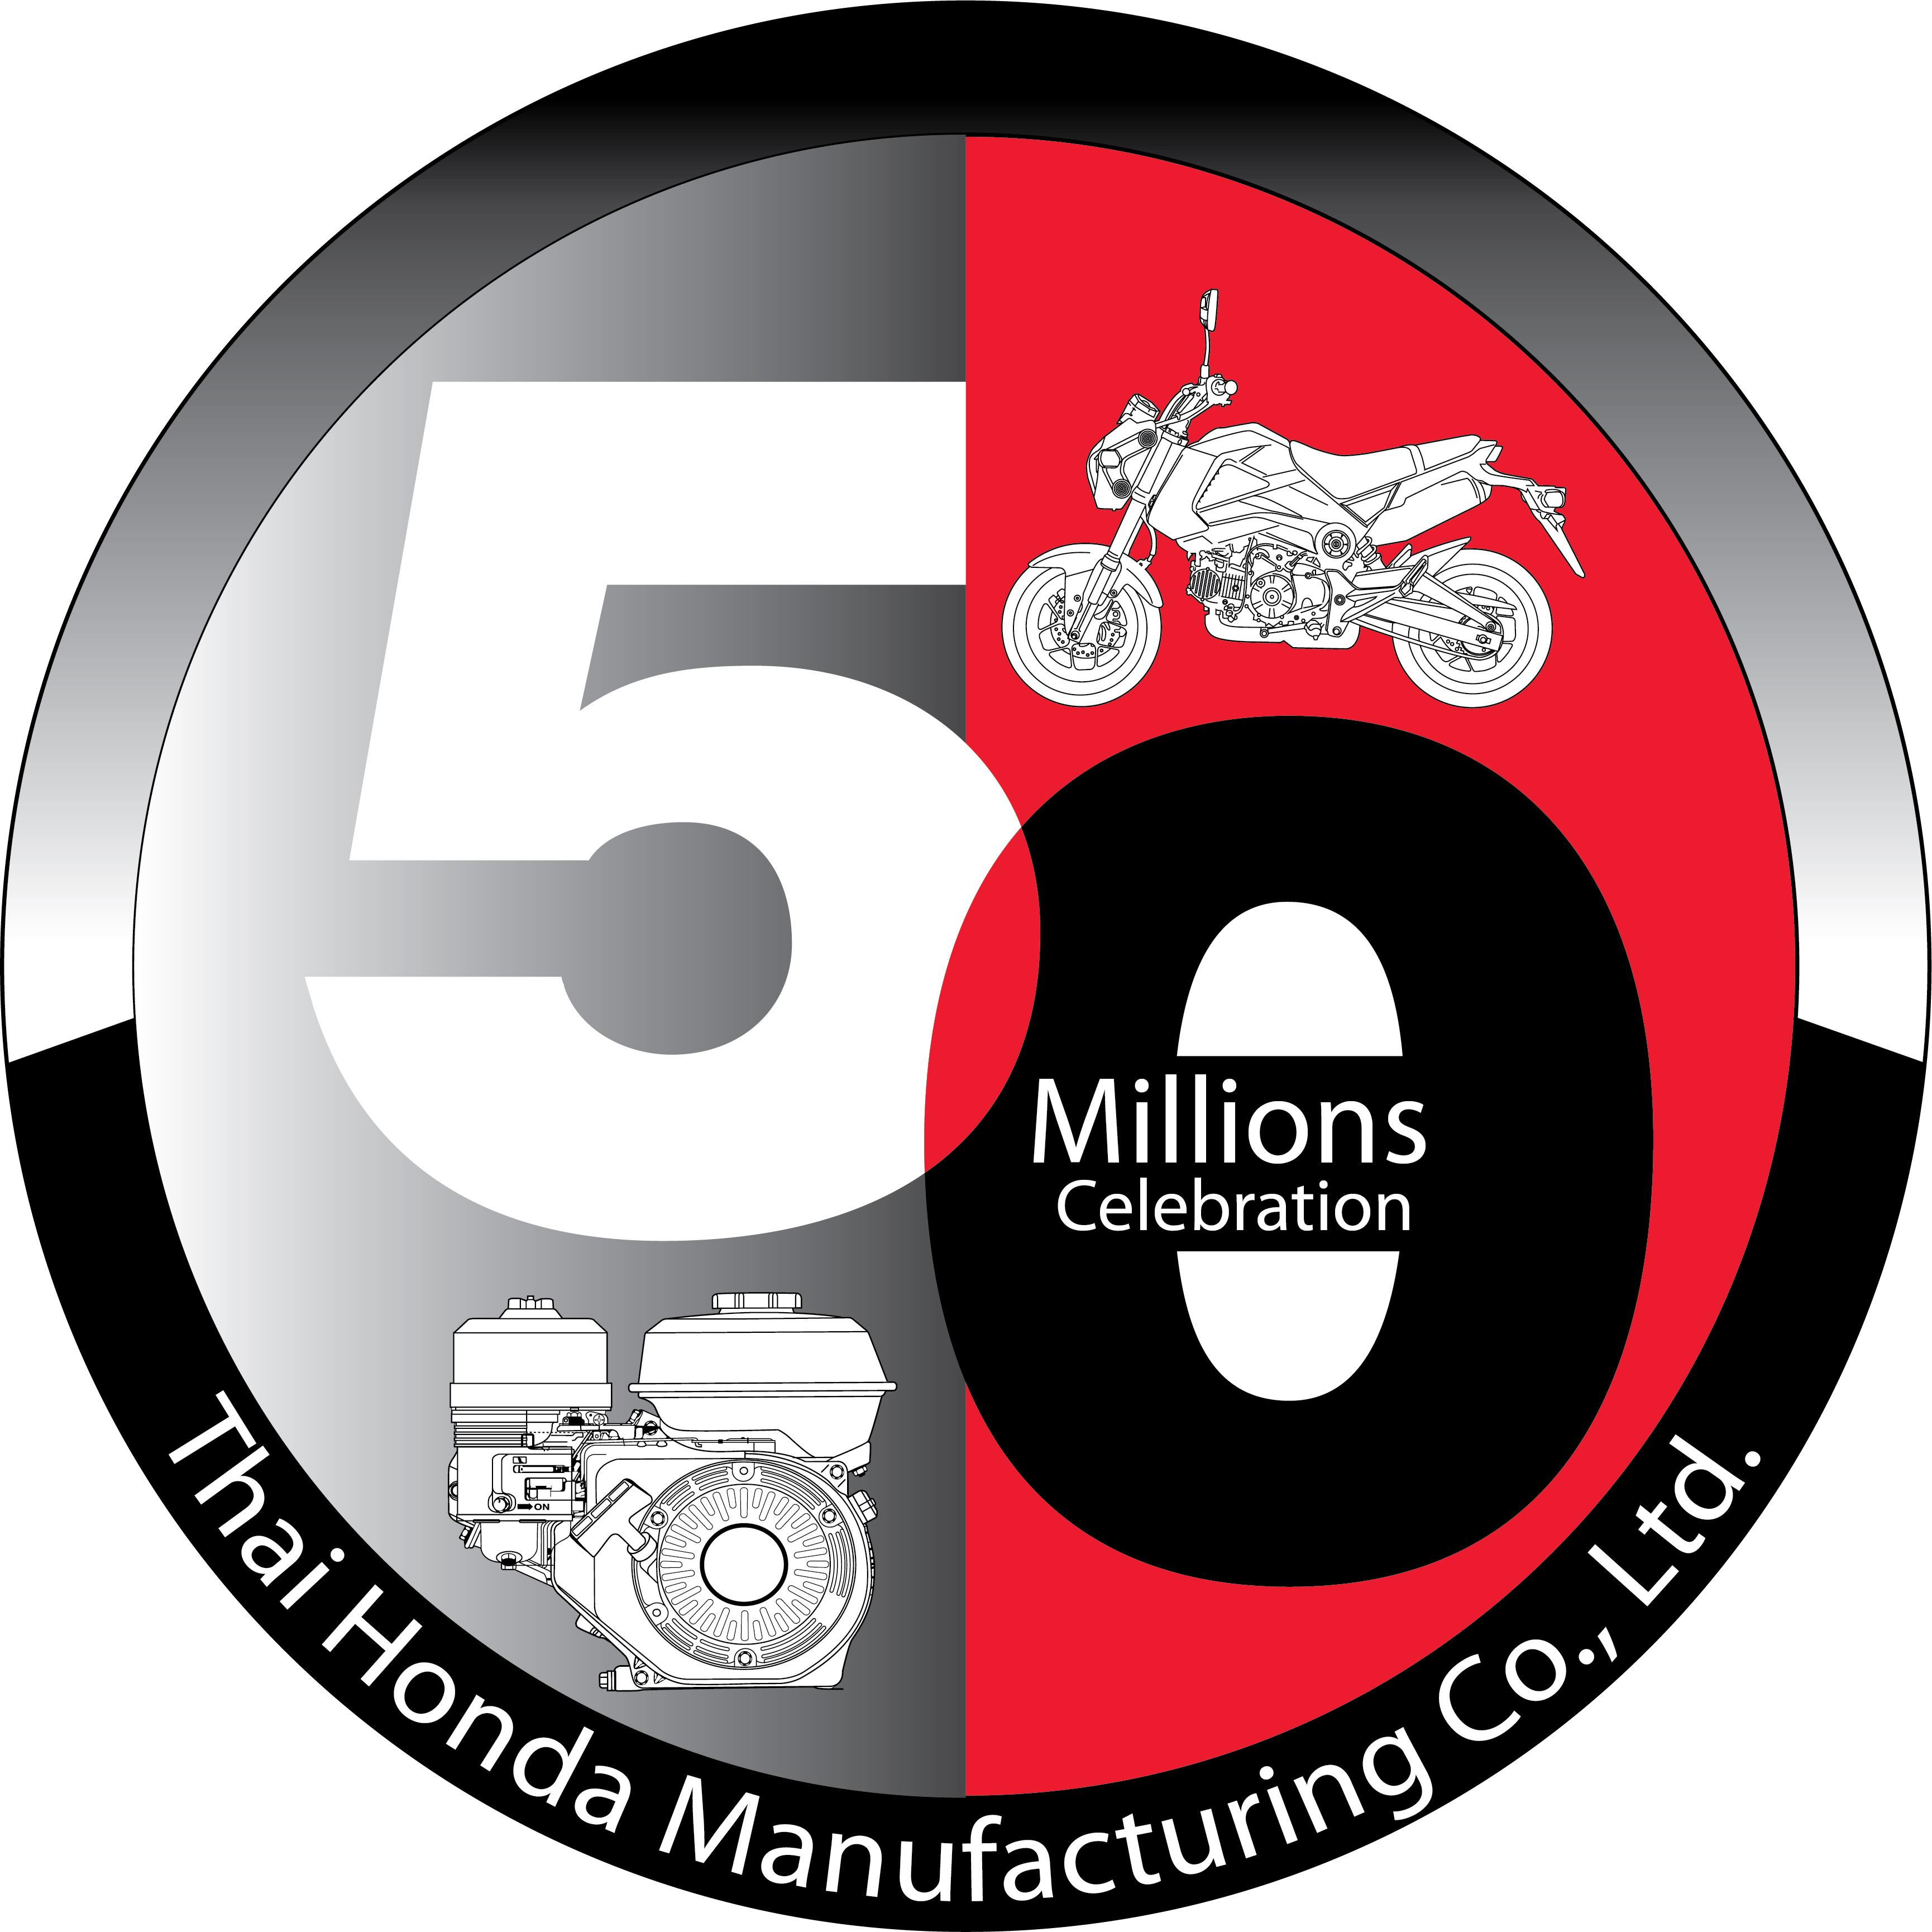 Honda Celebrates Production Of 50 Million Motorcycles And Power